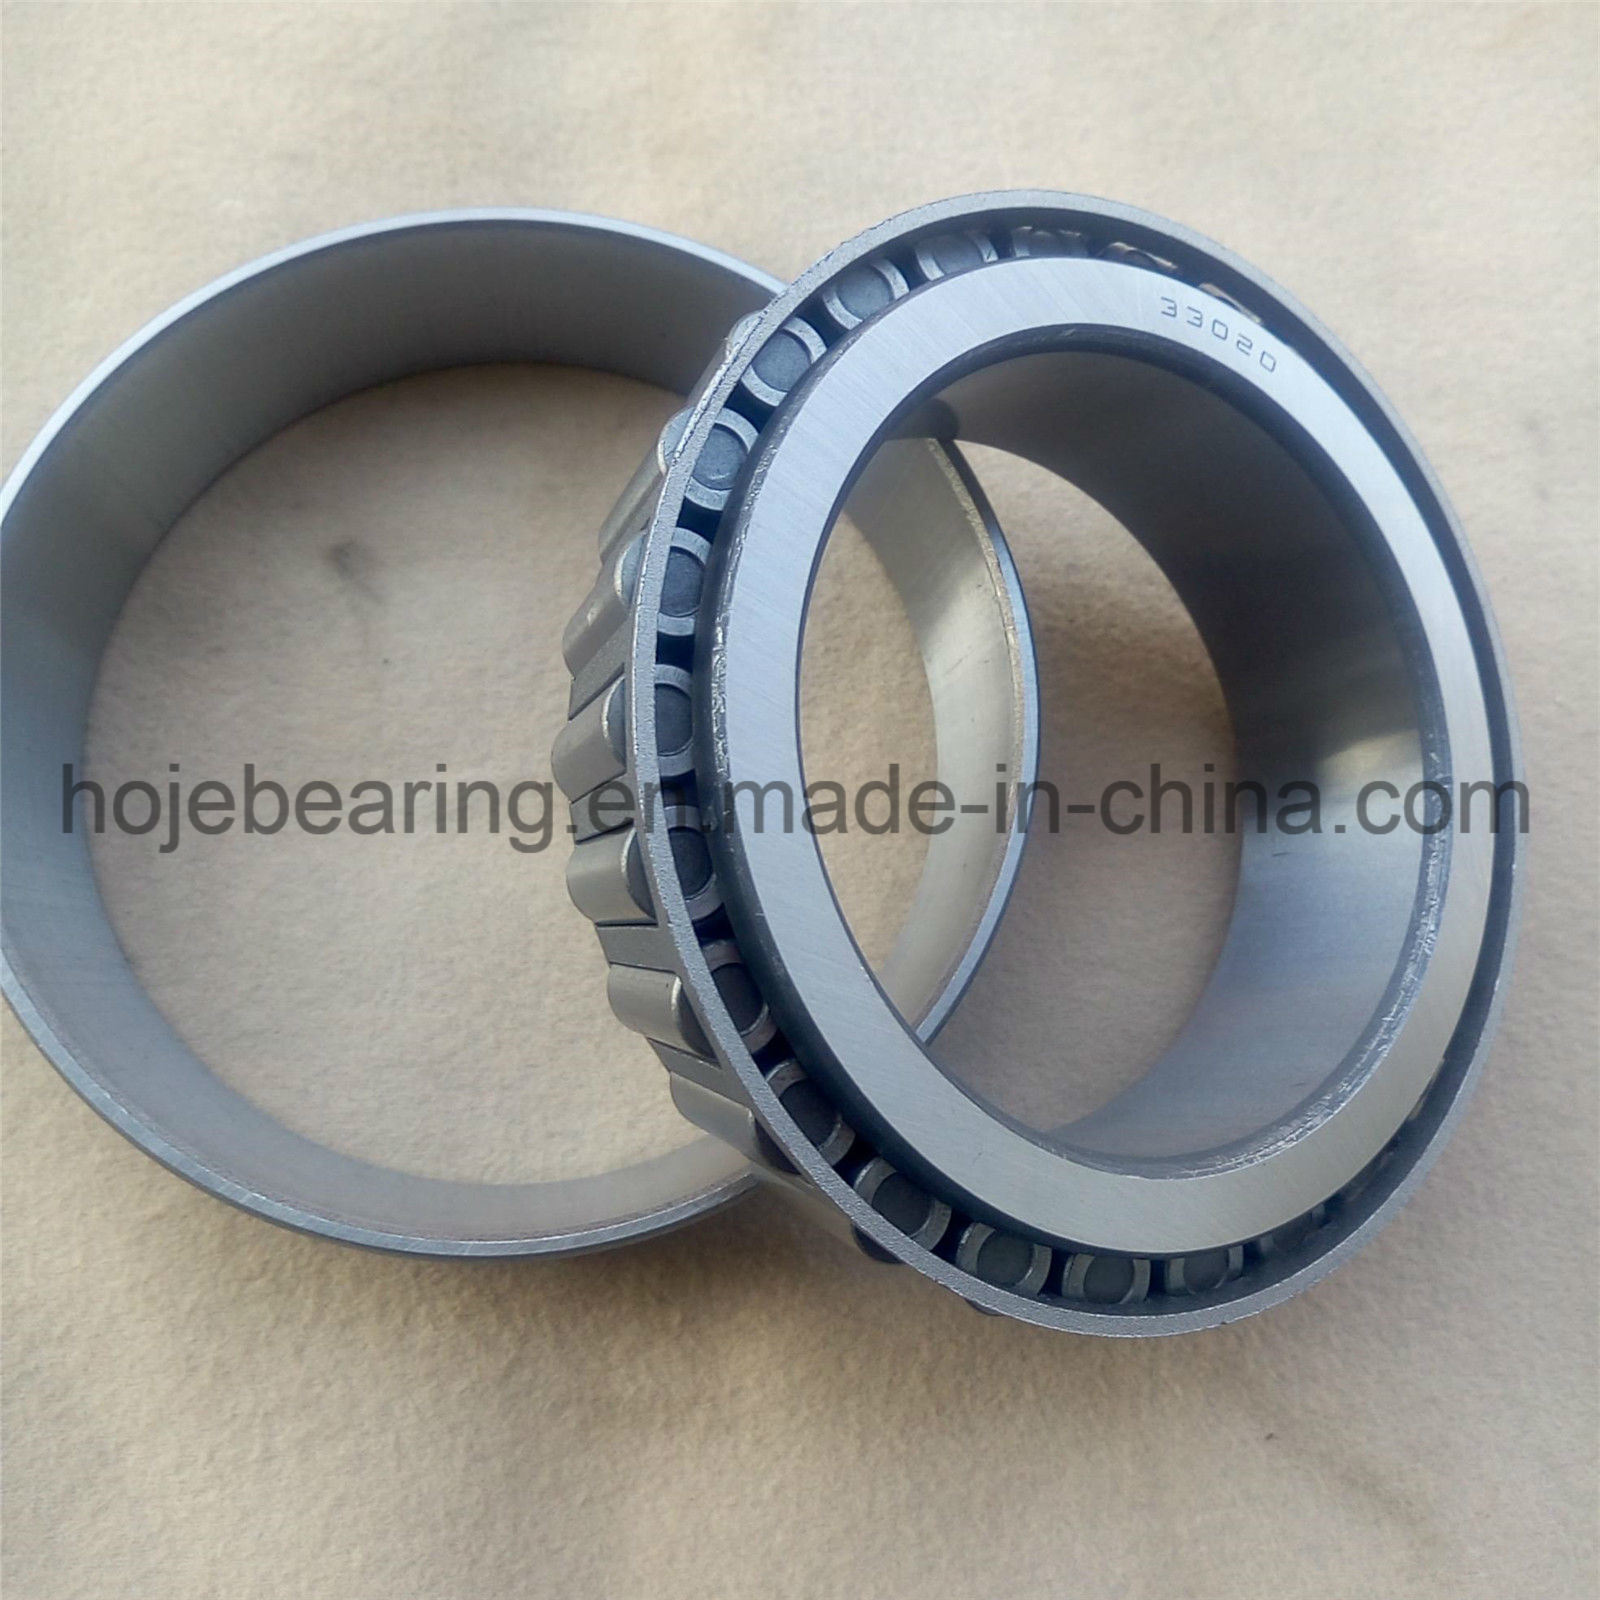 High Quality 31311 32311 Metric Size Taper Roller Bearing